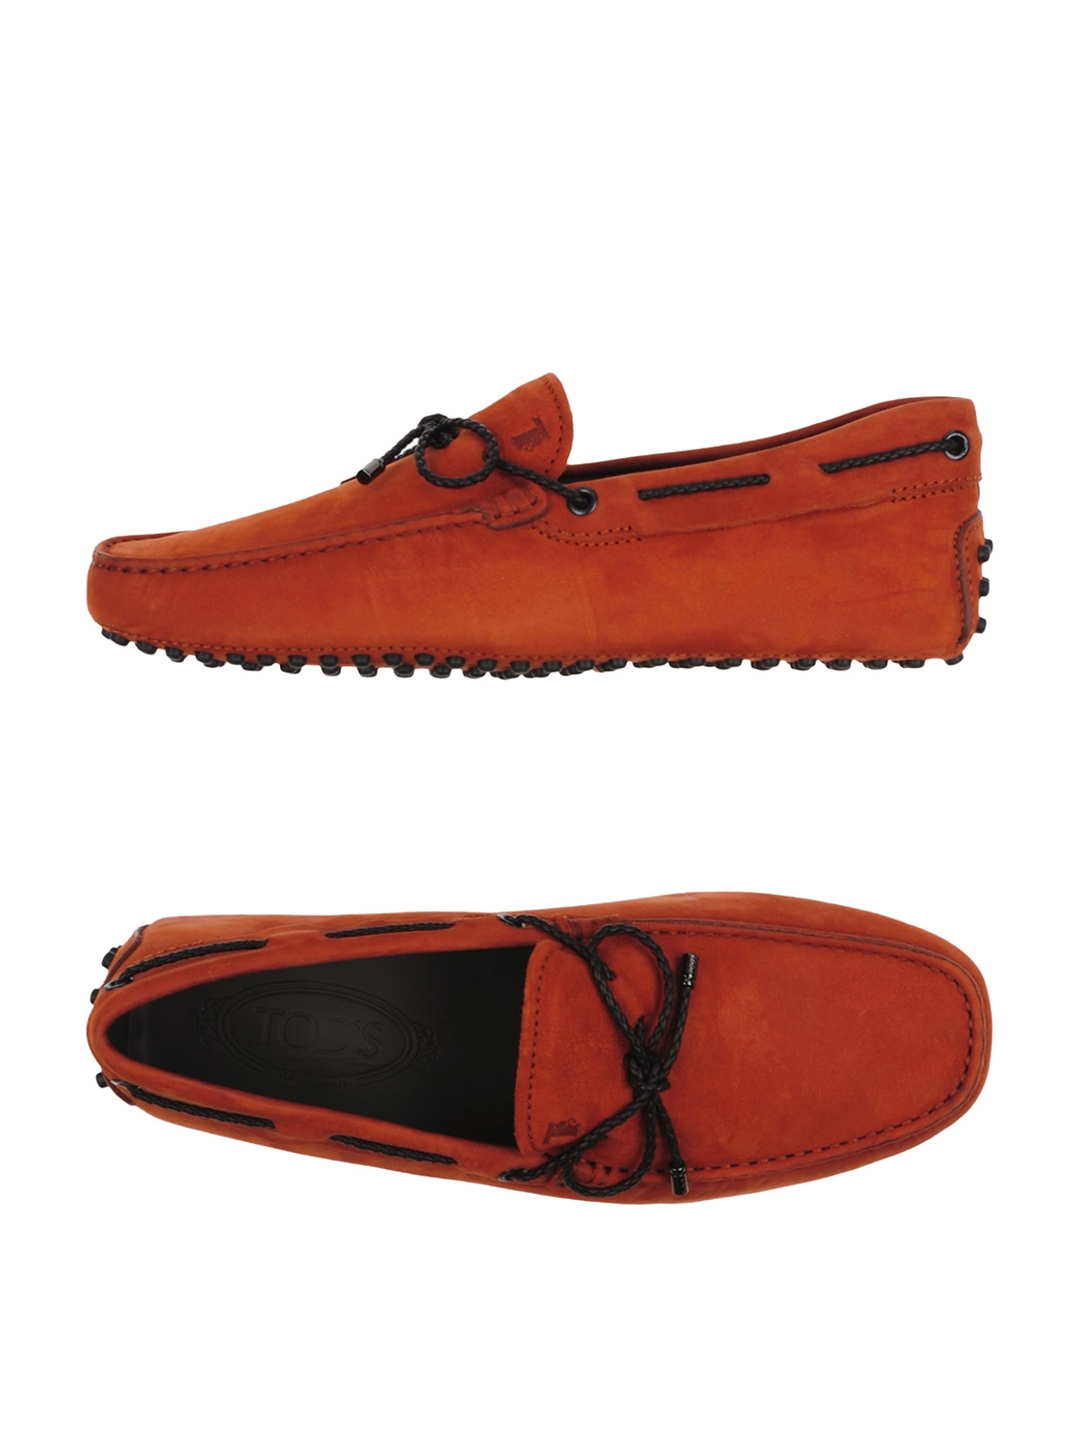 f3f67f9050 Buy Tods Men Rust Red Driving Shoes - Casual Shoes for Men 7756398 ...